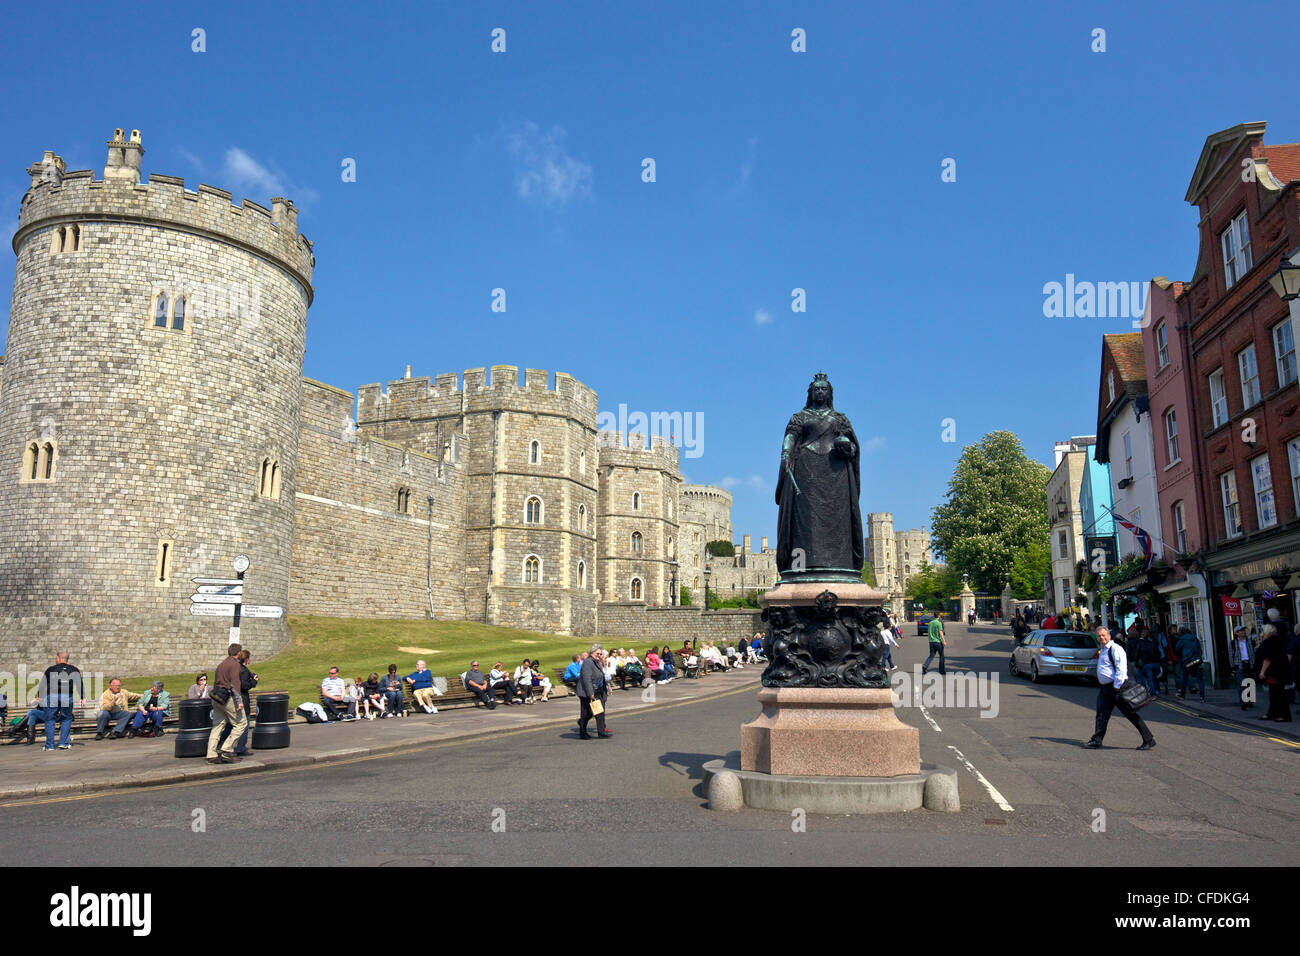 Visitors and tourists outside Windsor Castle, Windsor, Berkshire, England, United Kingdom, Europe - Stock Image